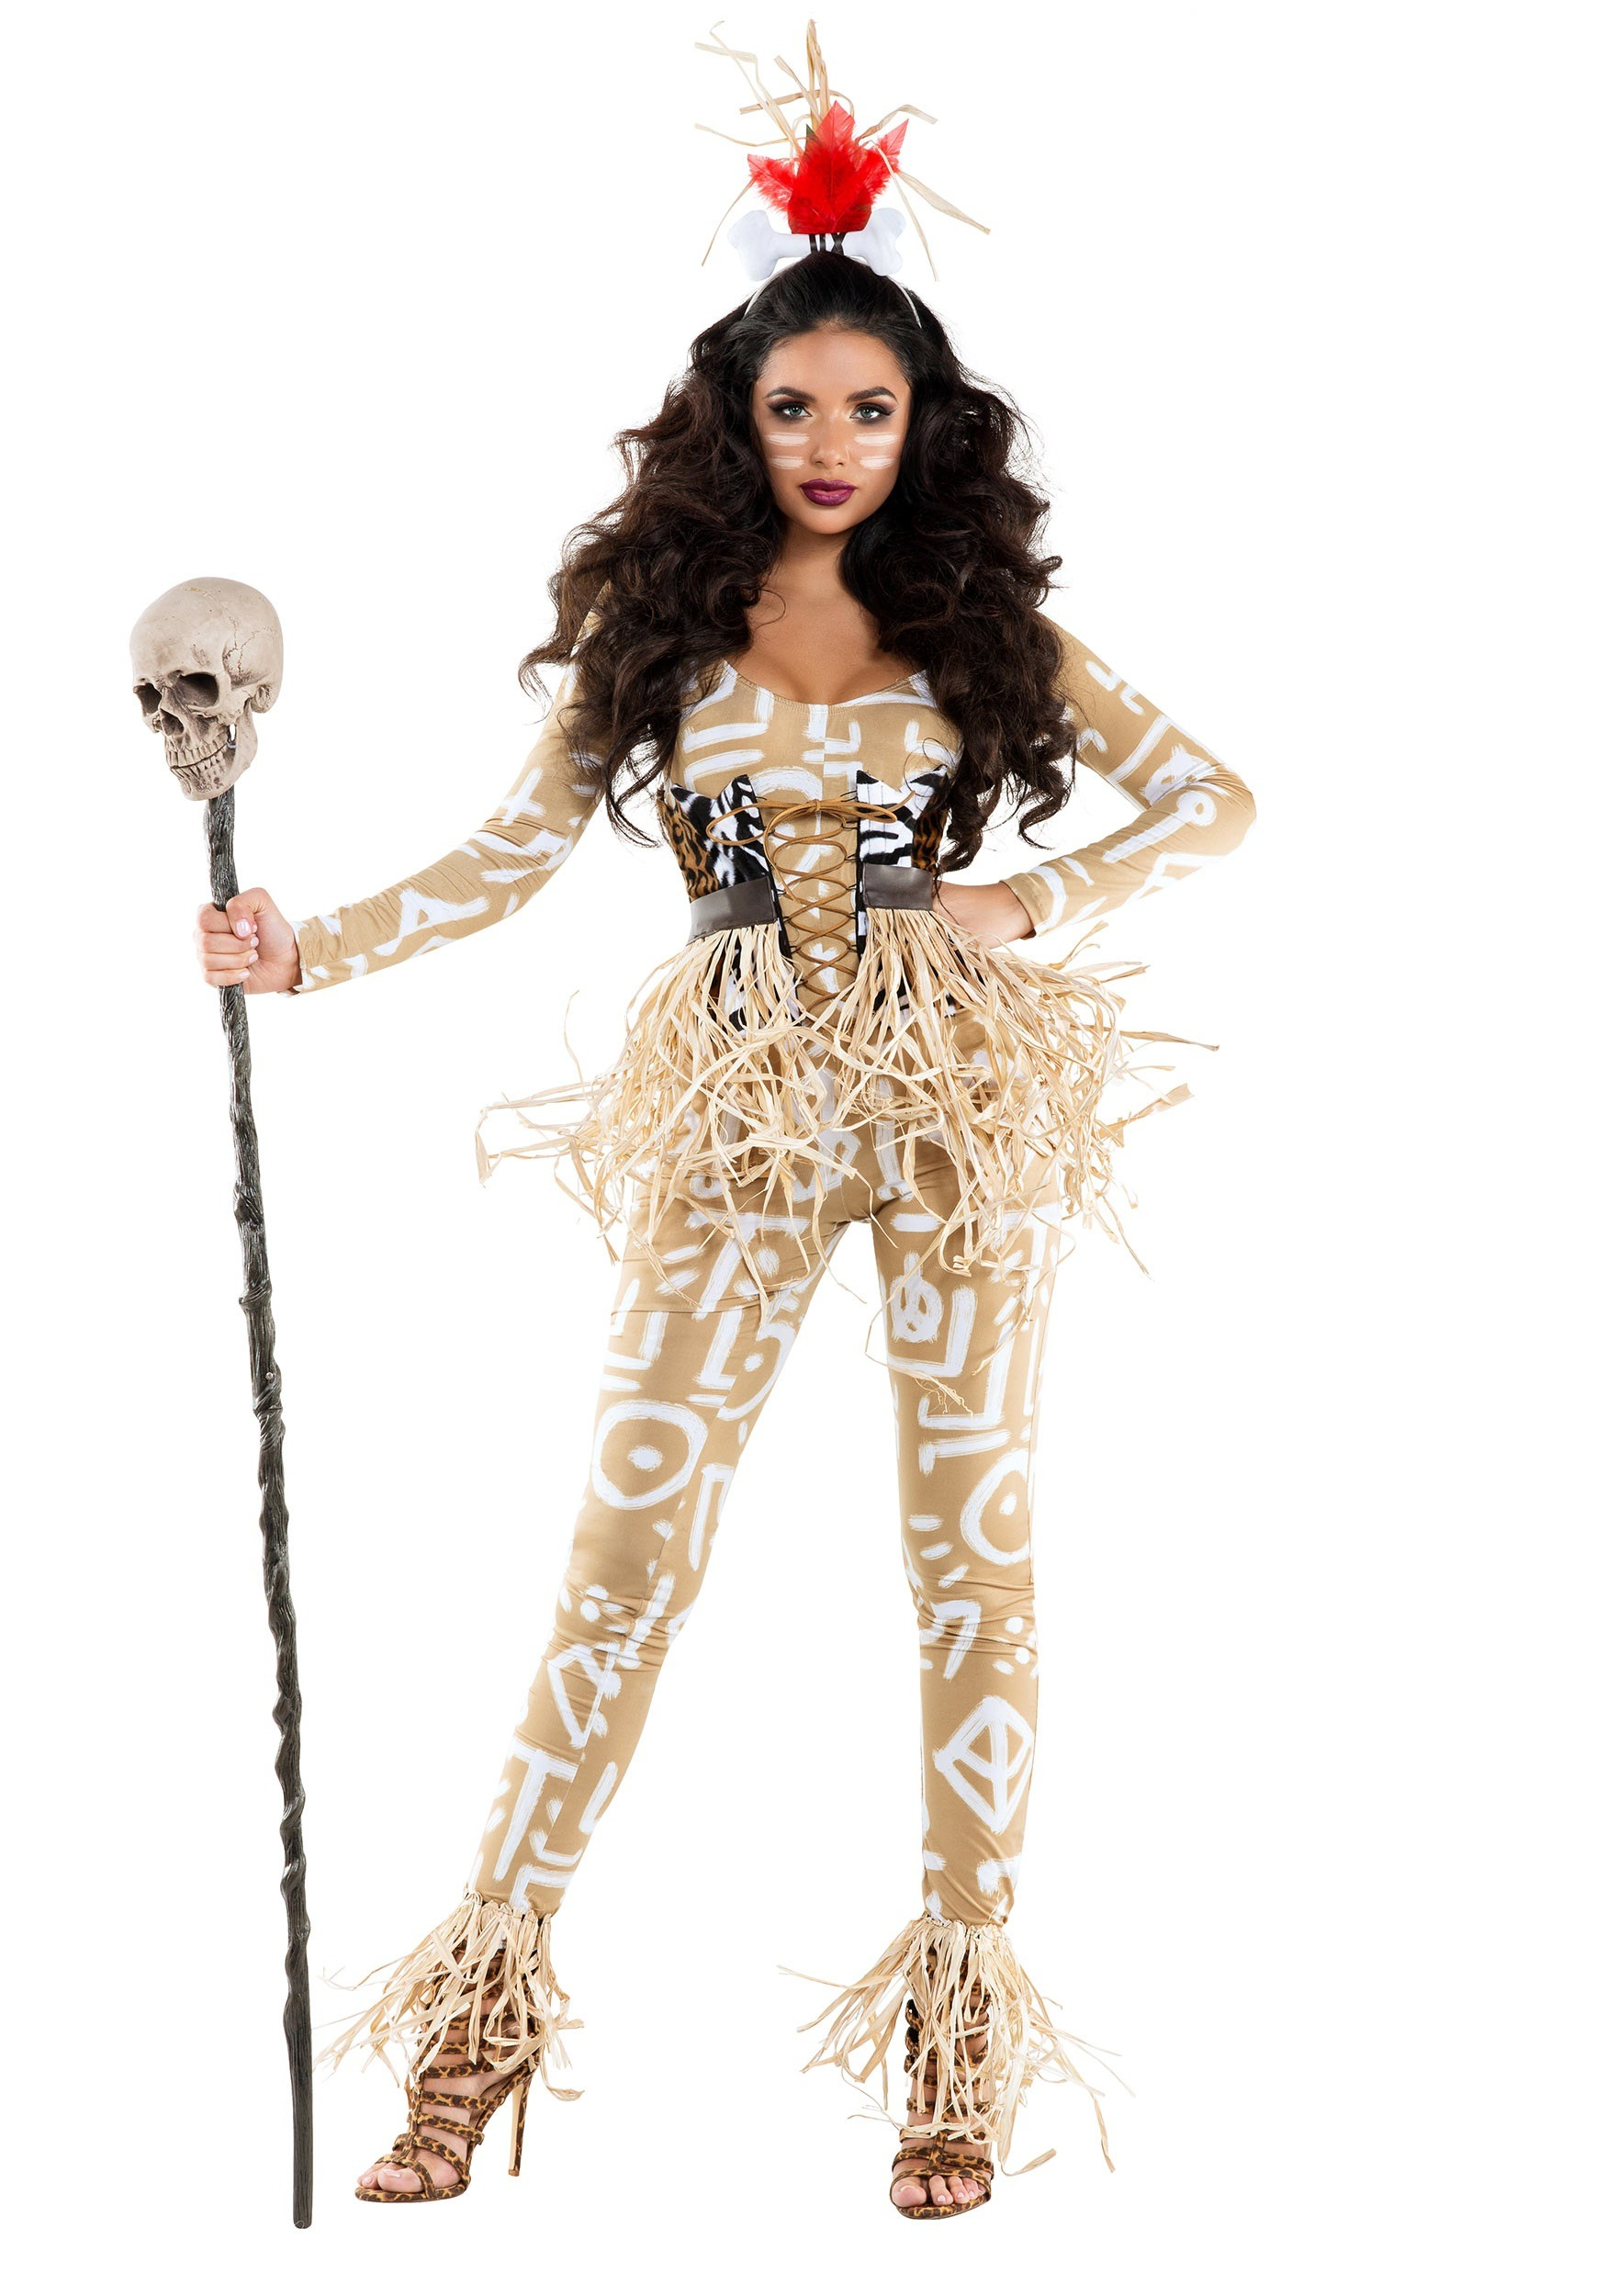 VooDoo Doll & Witch Doctor Costumes - HalloweenCostumes.com